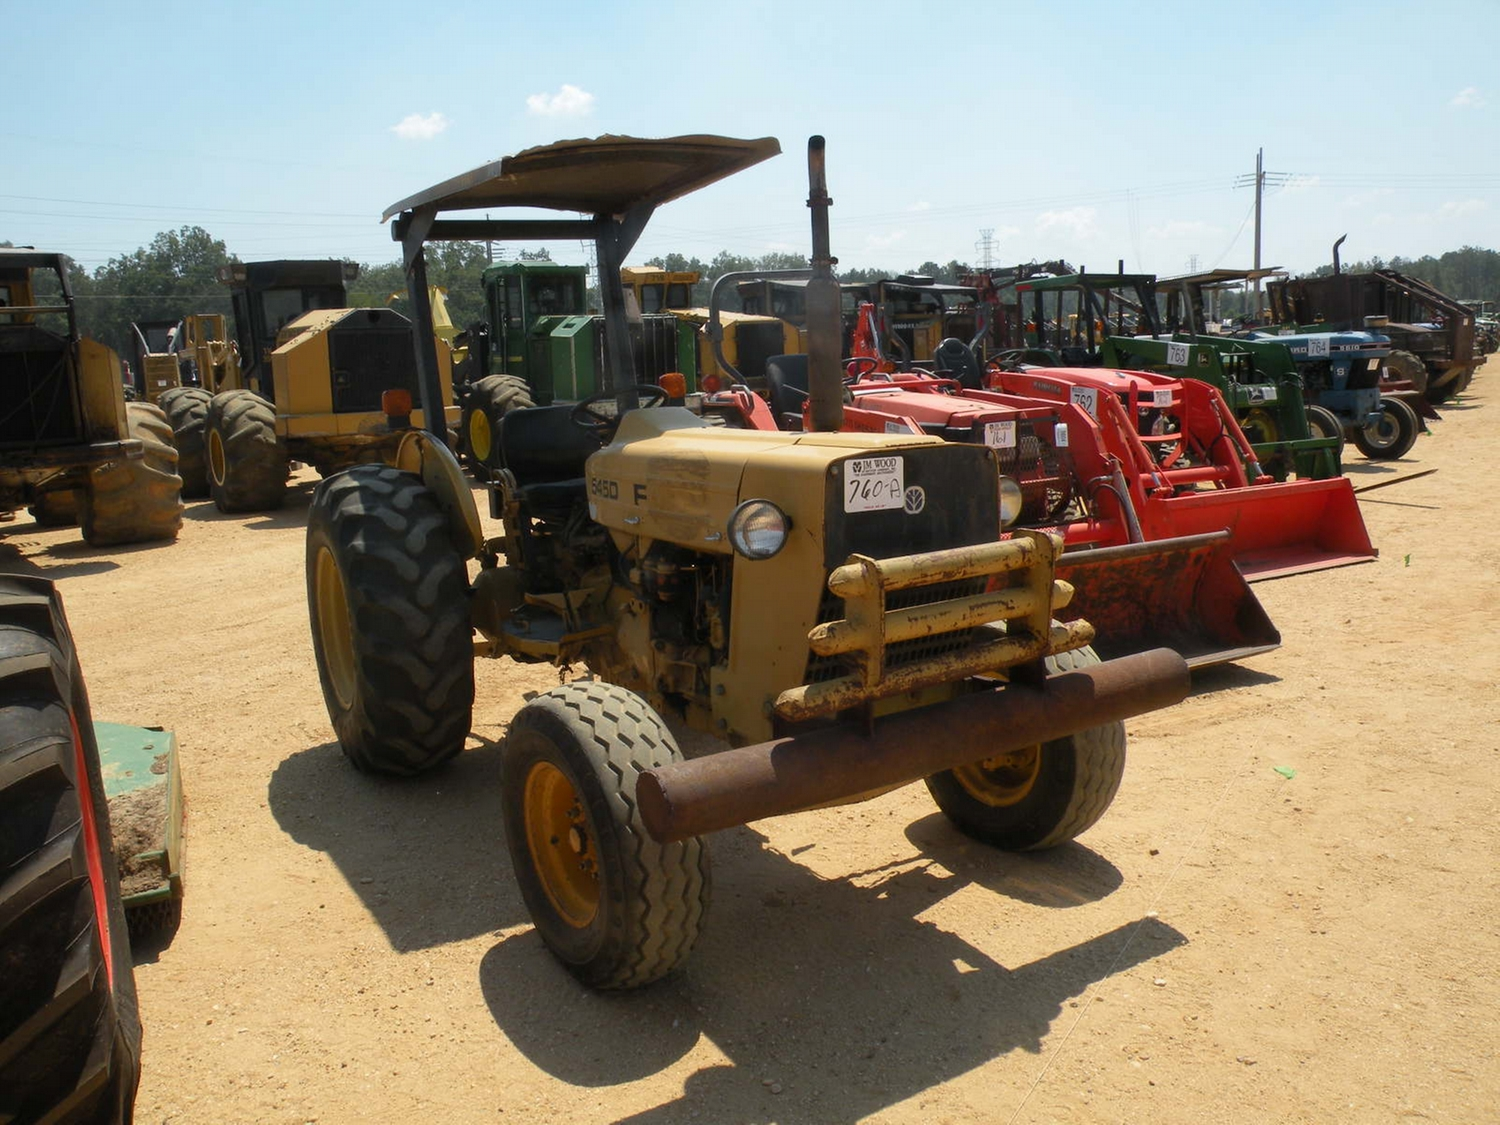 Ford 5200 Tractor Farm : Ford d farm tractor j m wood auction company inc